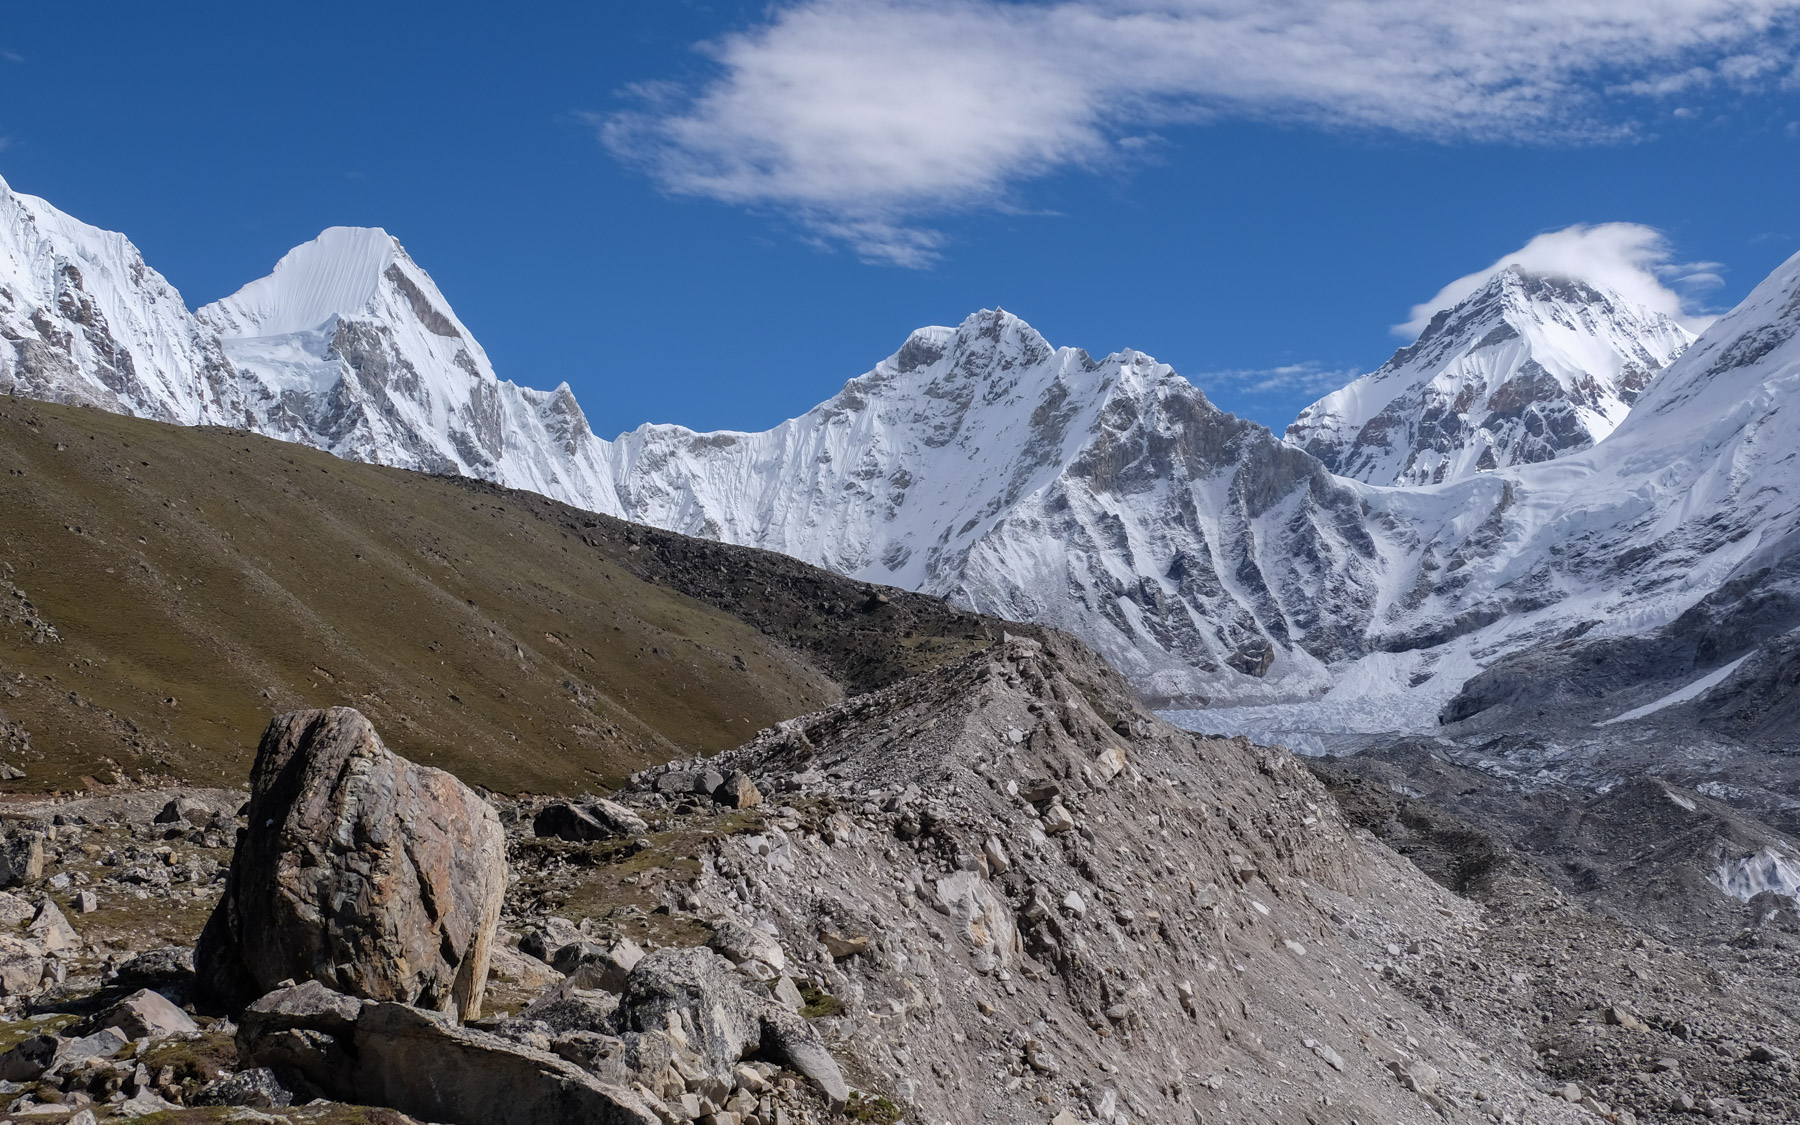 Kala Patthar & Gokyo, Everest 3 pass #3 23